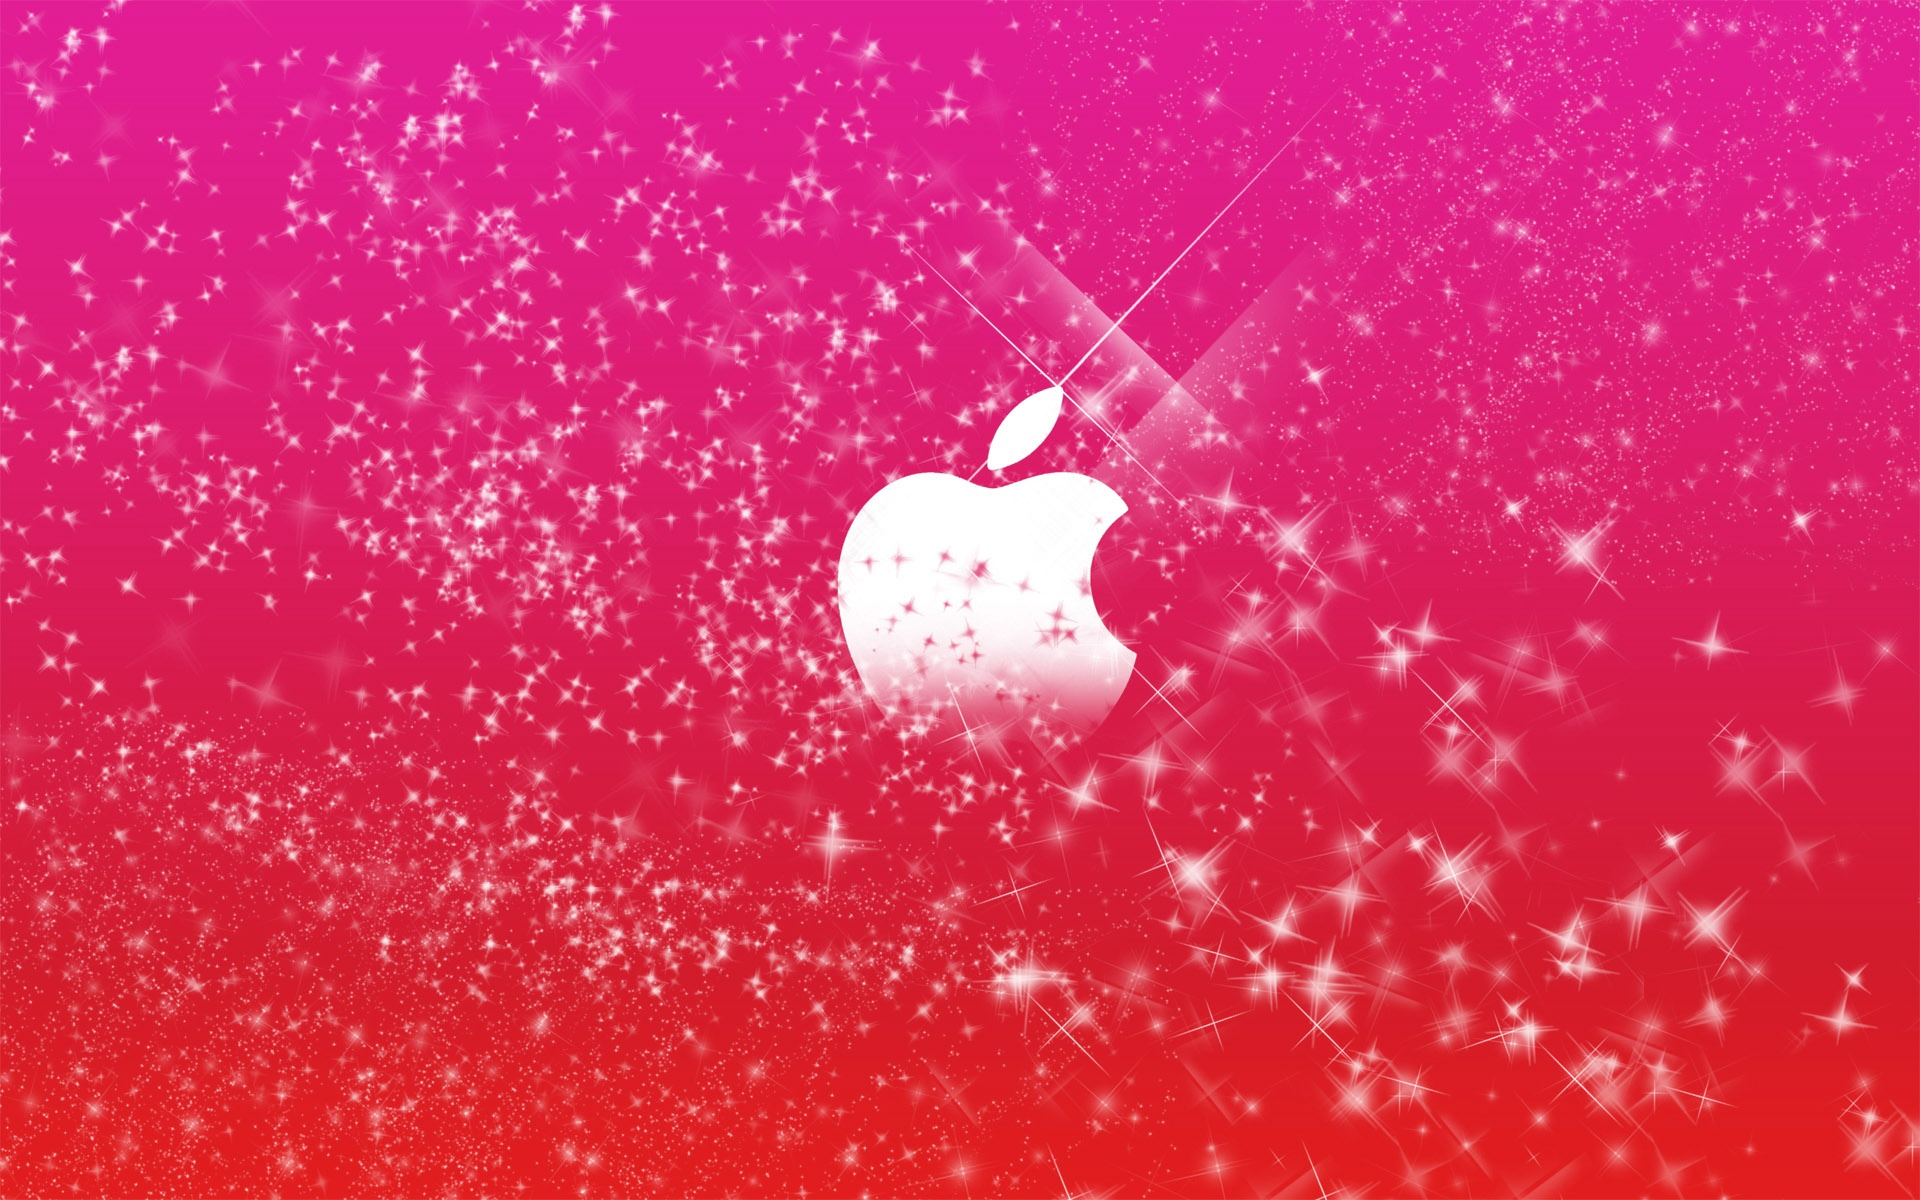 Description: Download Apple Logo in Pink Glitters HD & Widescreen Apple Wallpaper ...